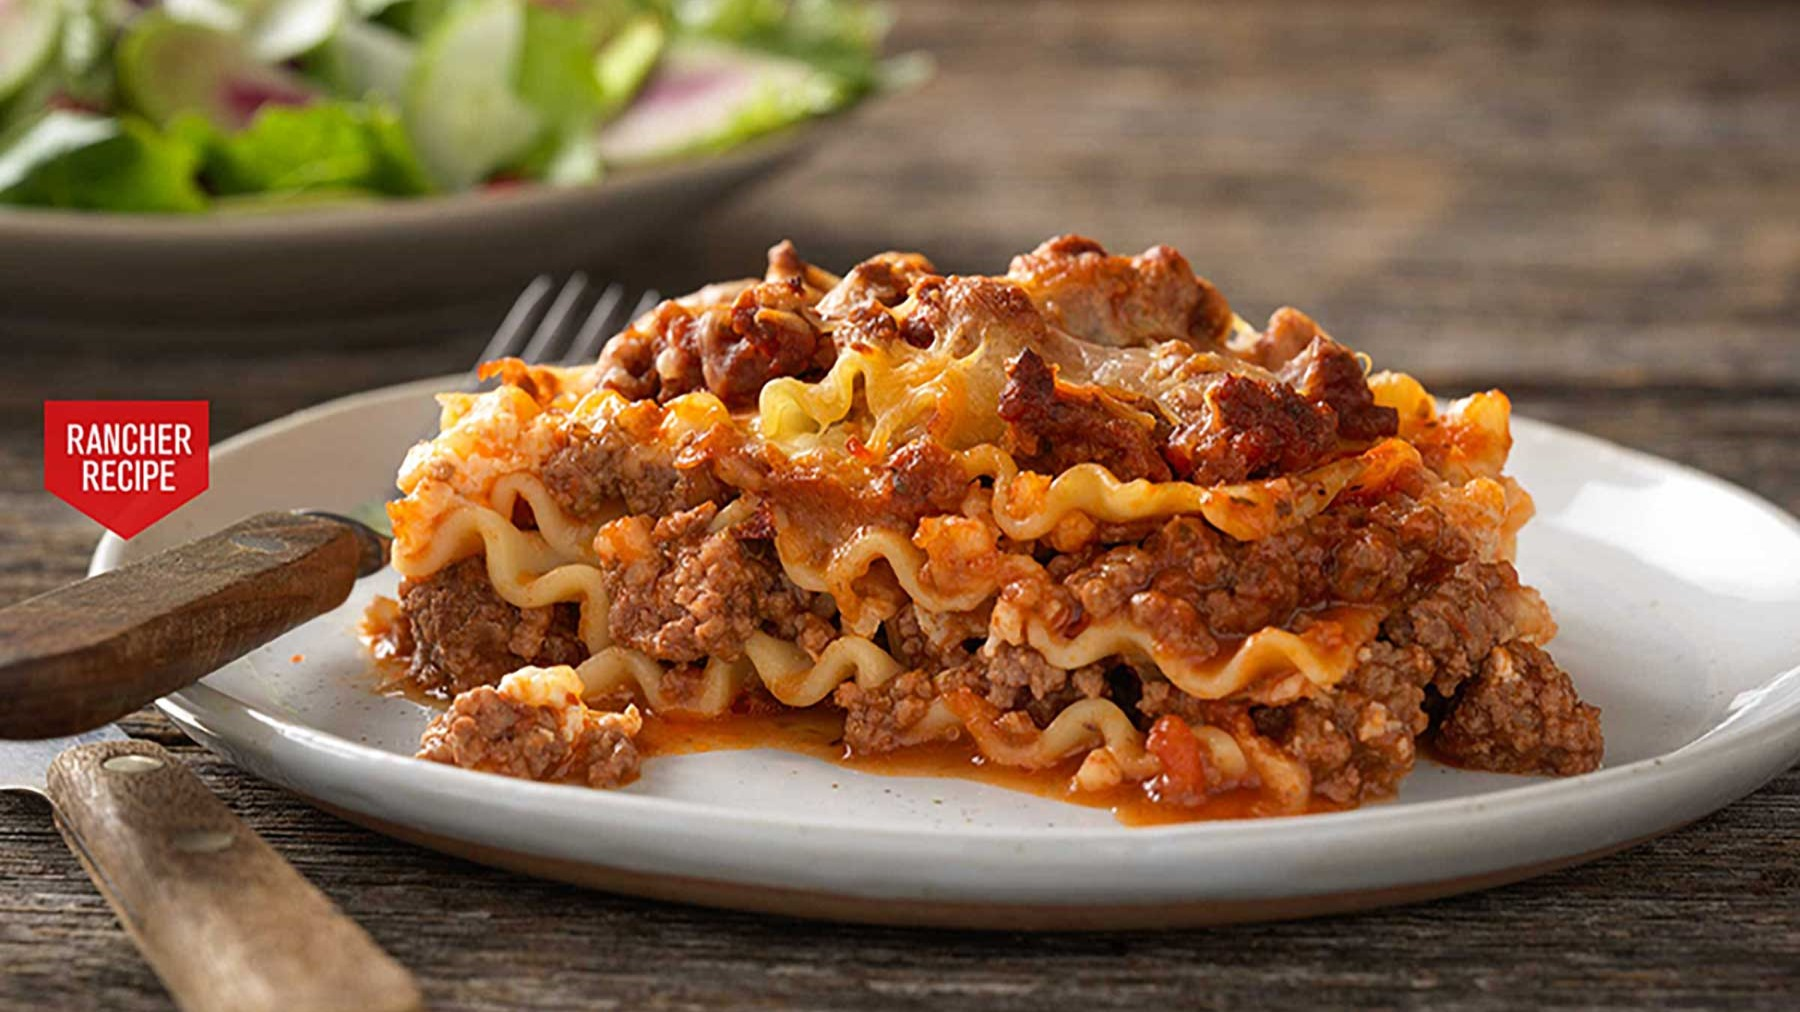 Rancher Recipe Farm-Ous Lasagna